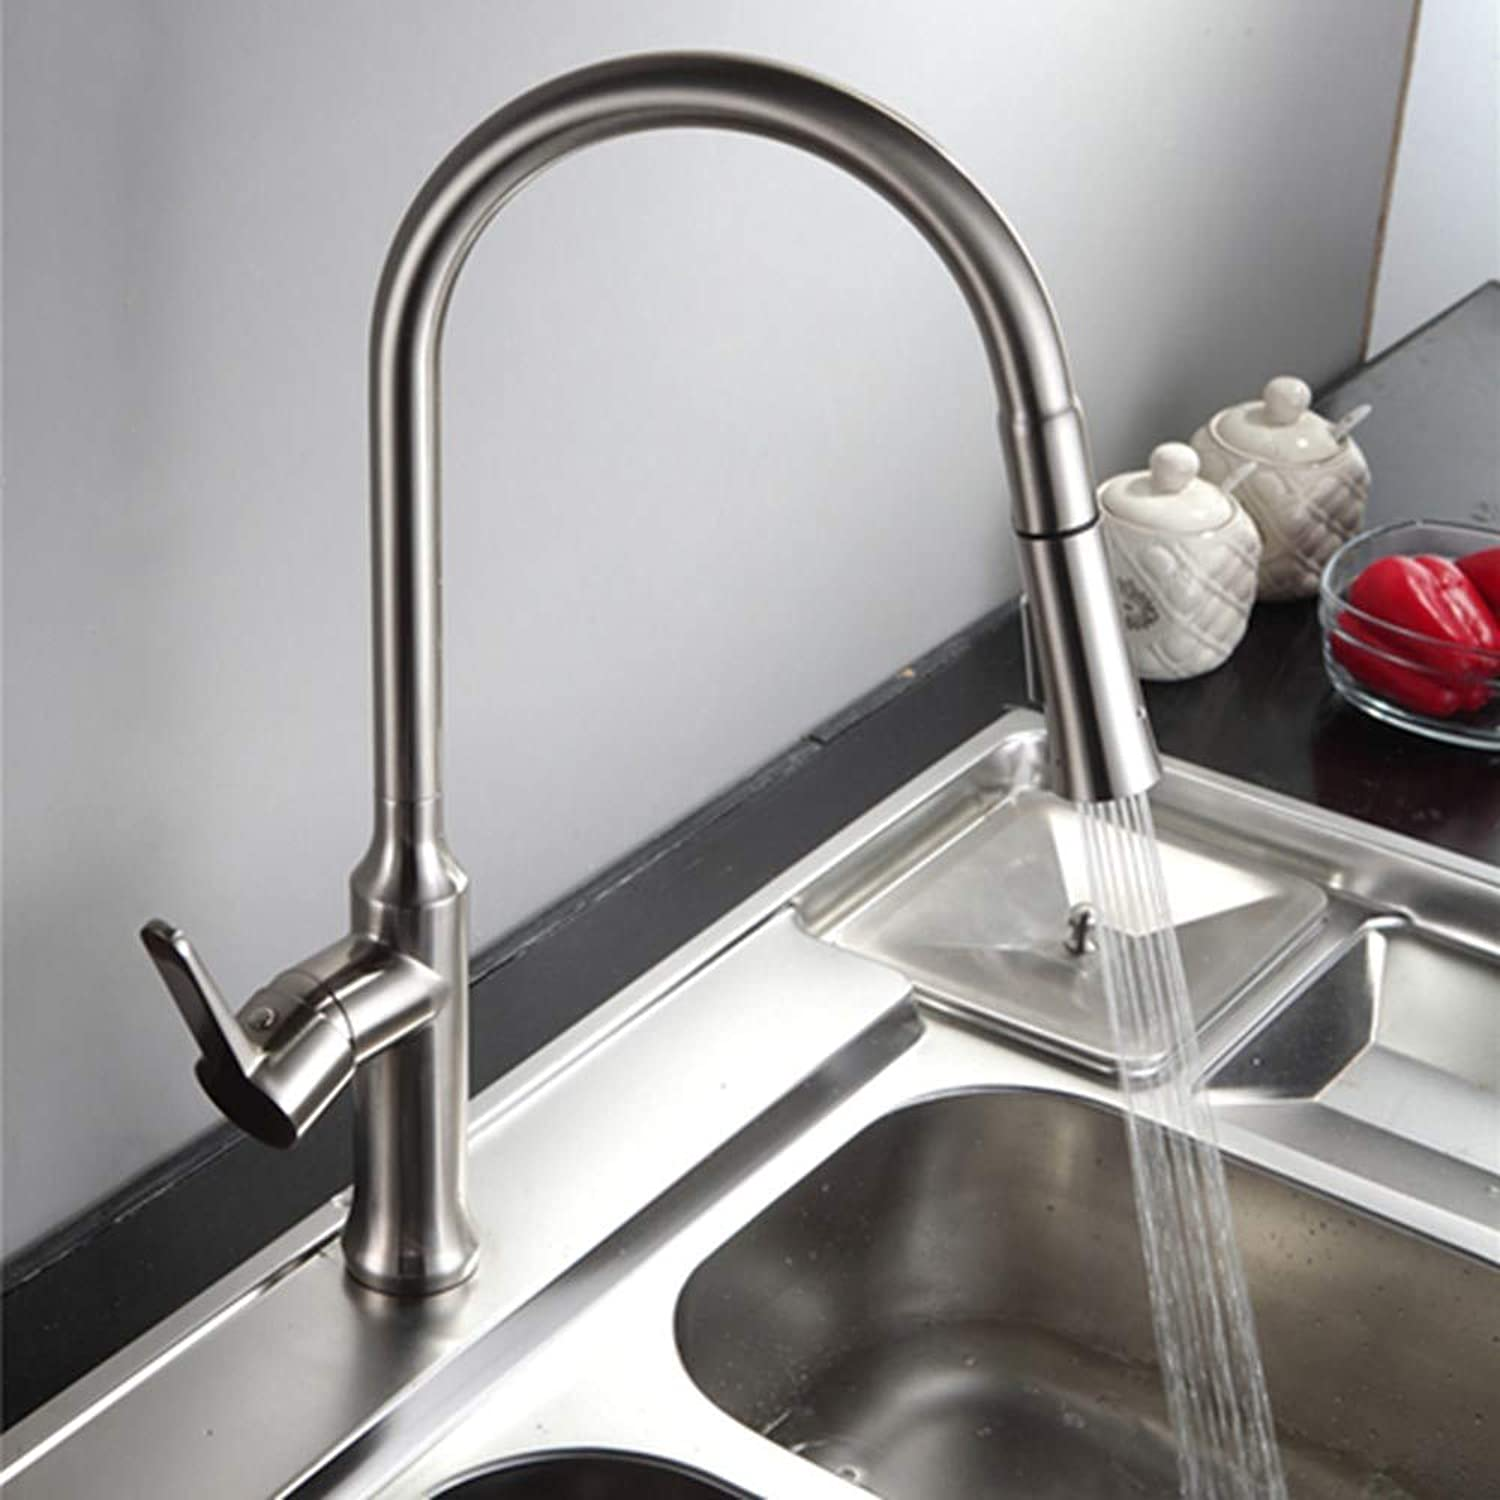 Janitorial & Sanitation Supplies Color : Silver Uzanesx Copper Chrome Bath Water Quality Floor Type Faucet